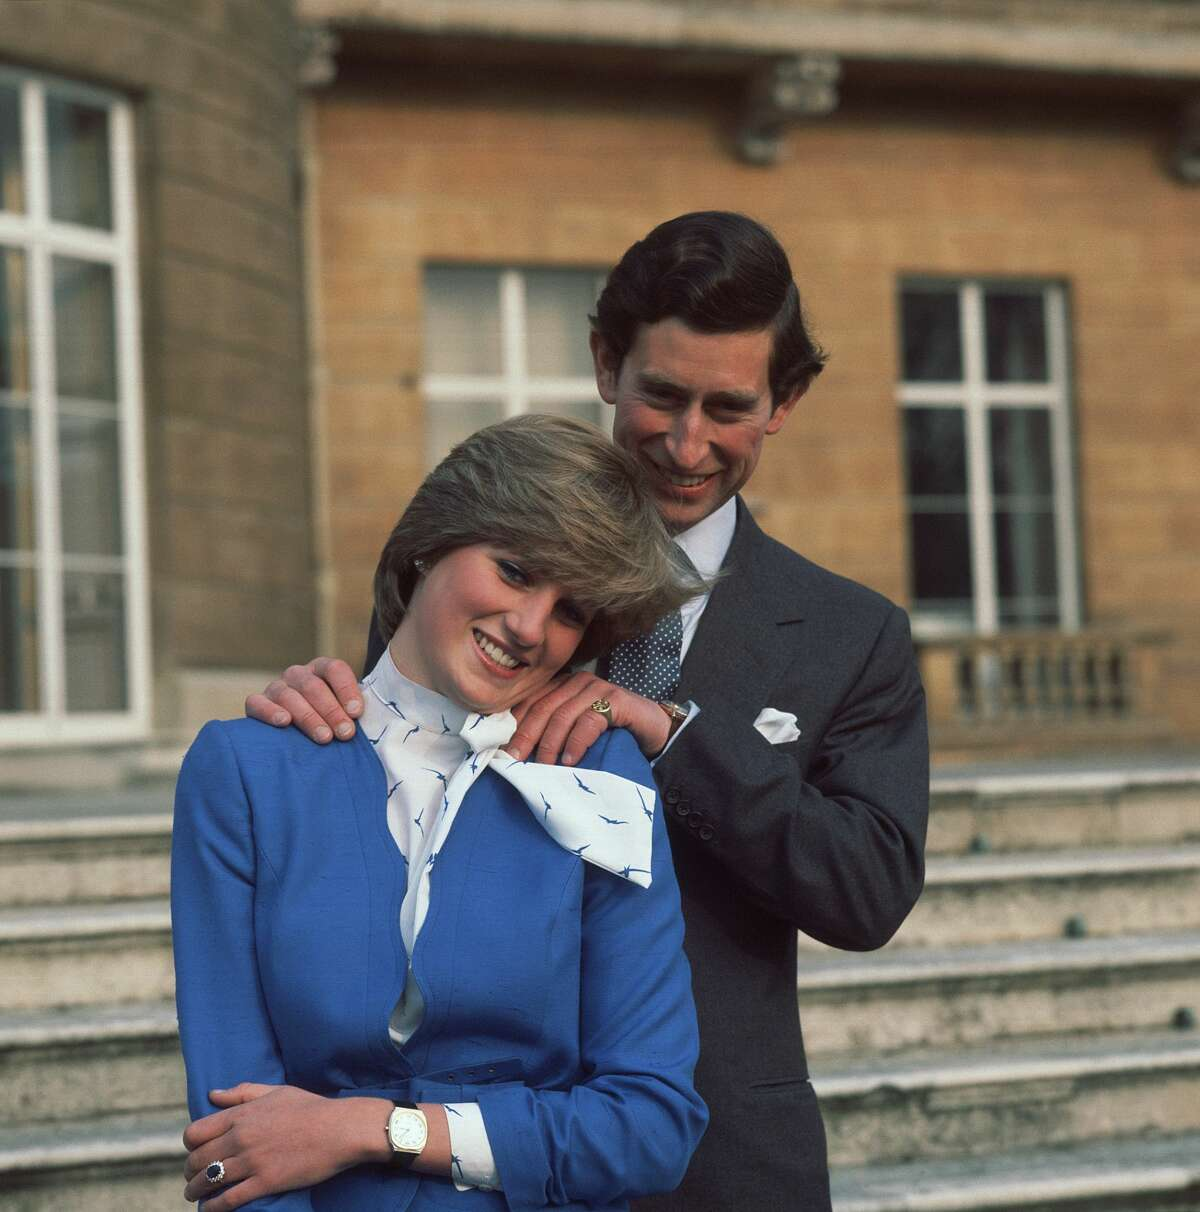 Prince Charles and Lady Diana Spencer pose for photographers at Buckingham Palace after the announcement of their engagement.